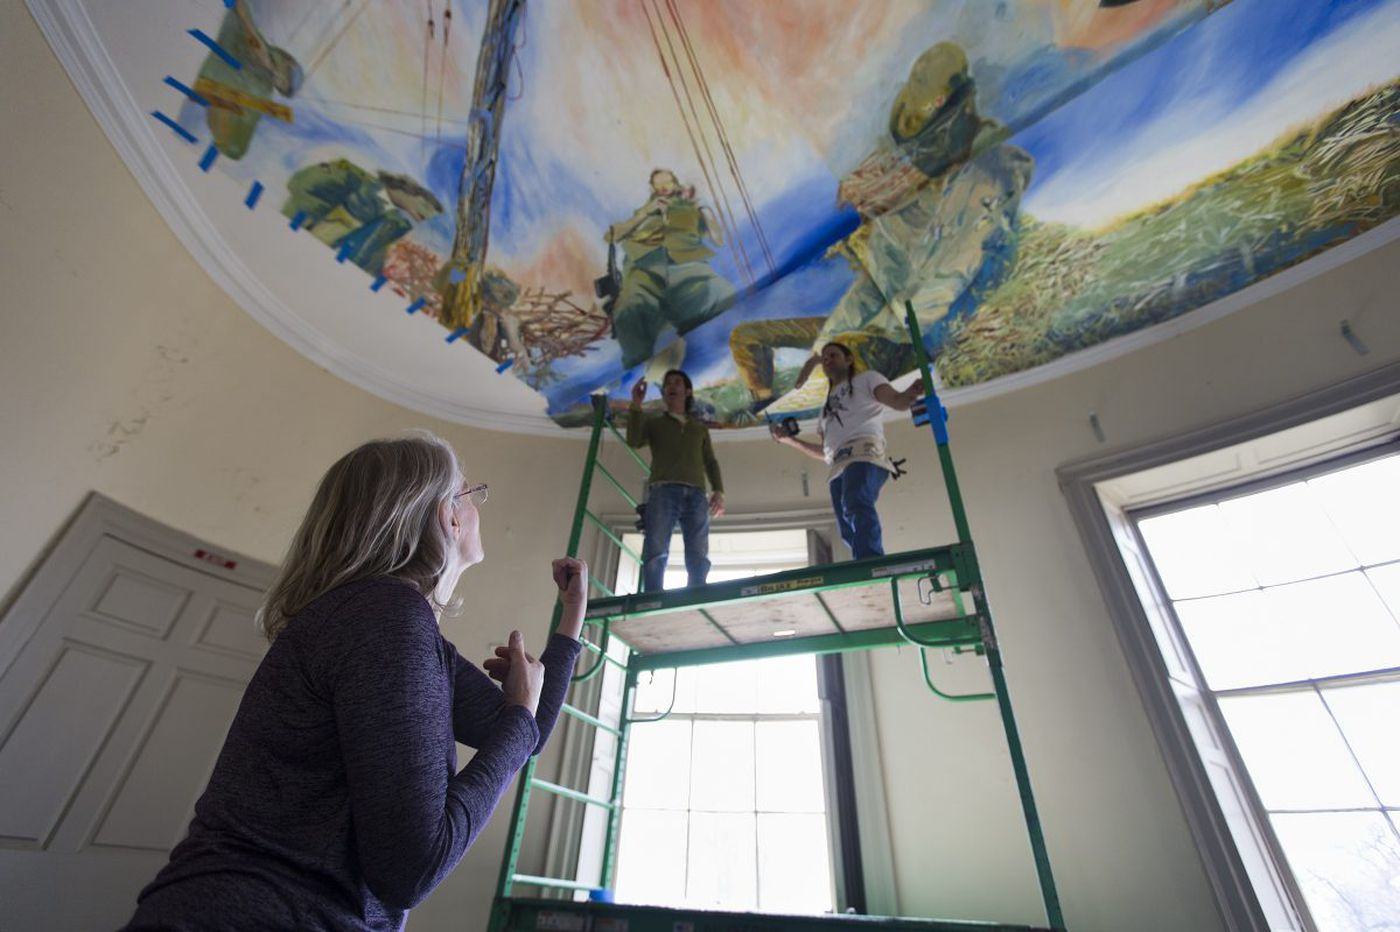 'Antipodes' at Lemon Hill shows a way forward: Philly's mansions don't need to be musty antiques